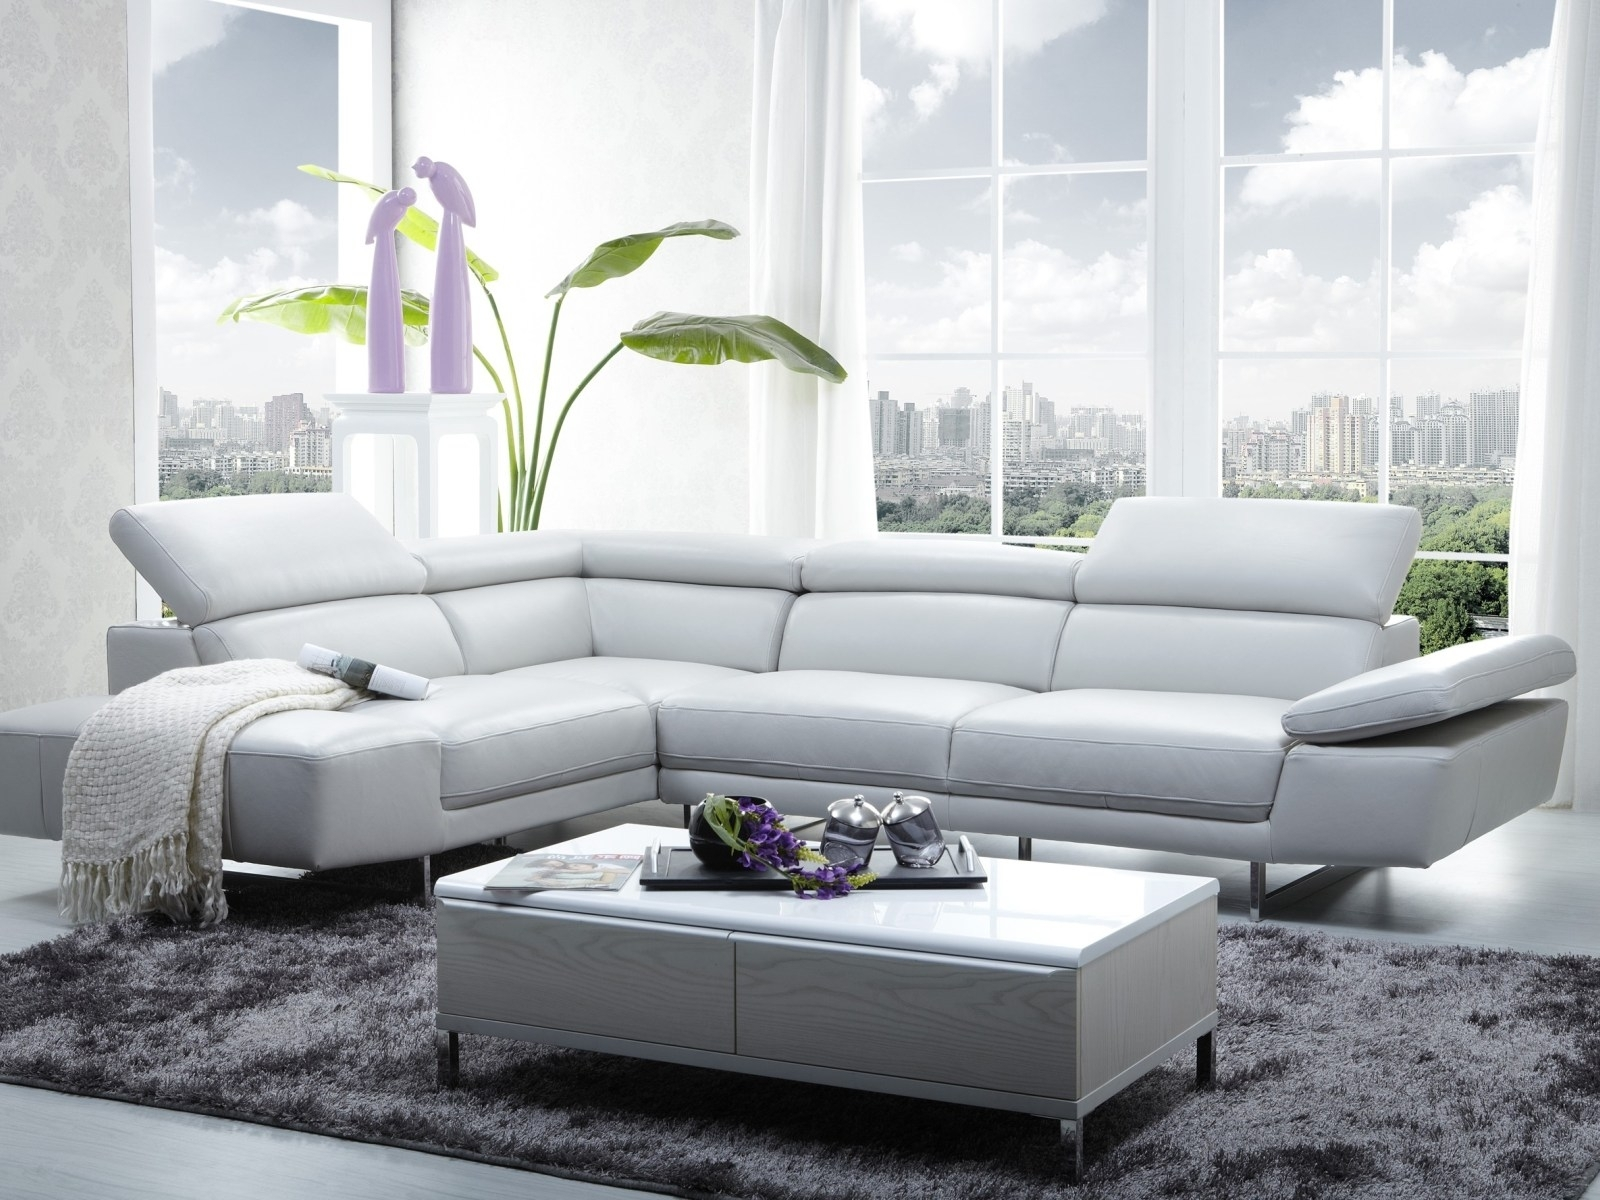 ▻ Sofa : 15 3058702 Poster P 1 A Modular Sofa That Can Rearrange Throughout Sectional Sofas That Can Be Rearranged (Image 1 of 10)